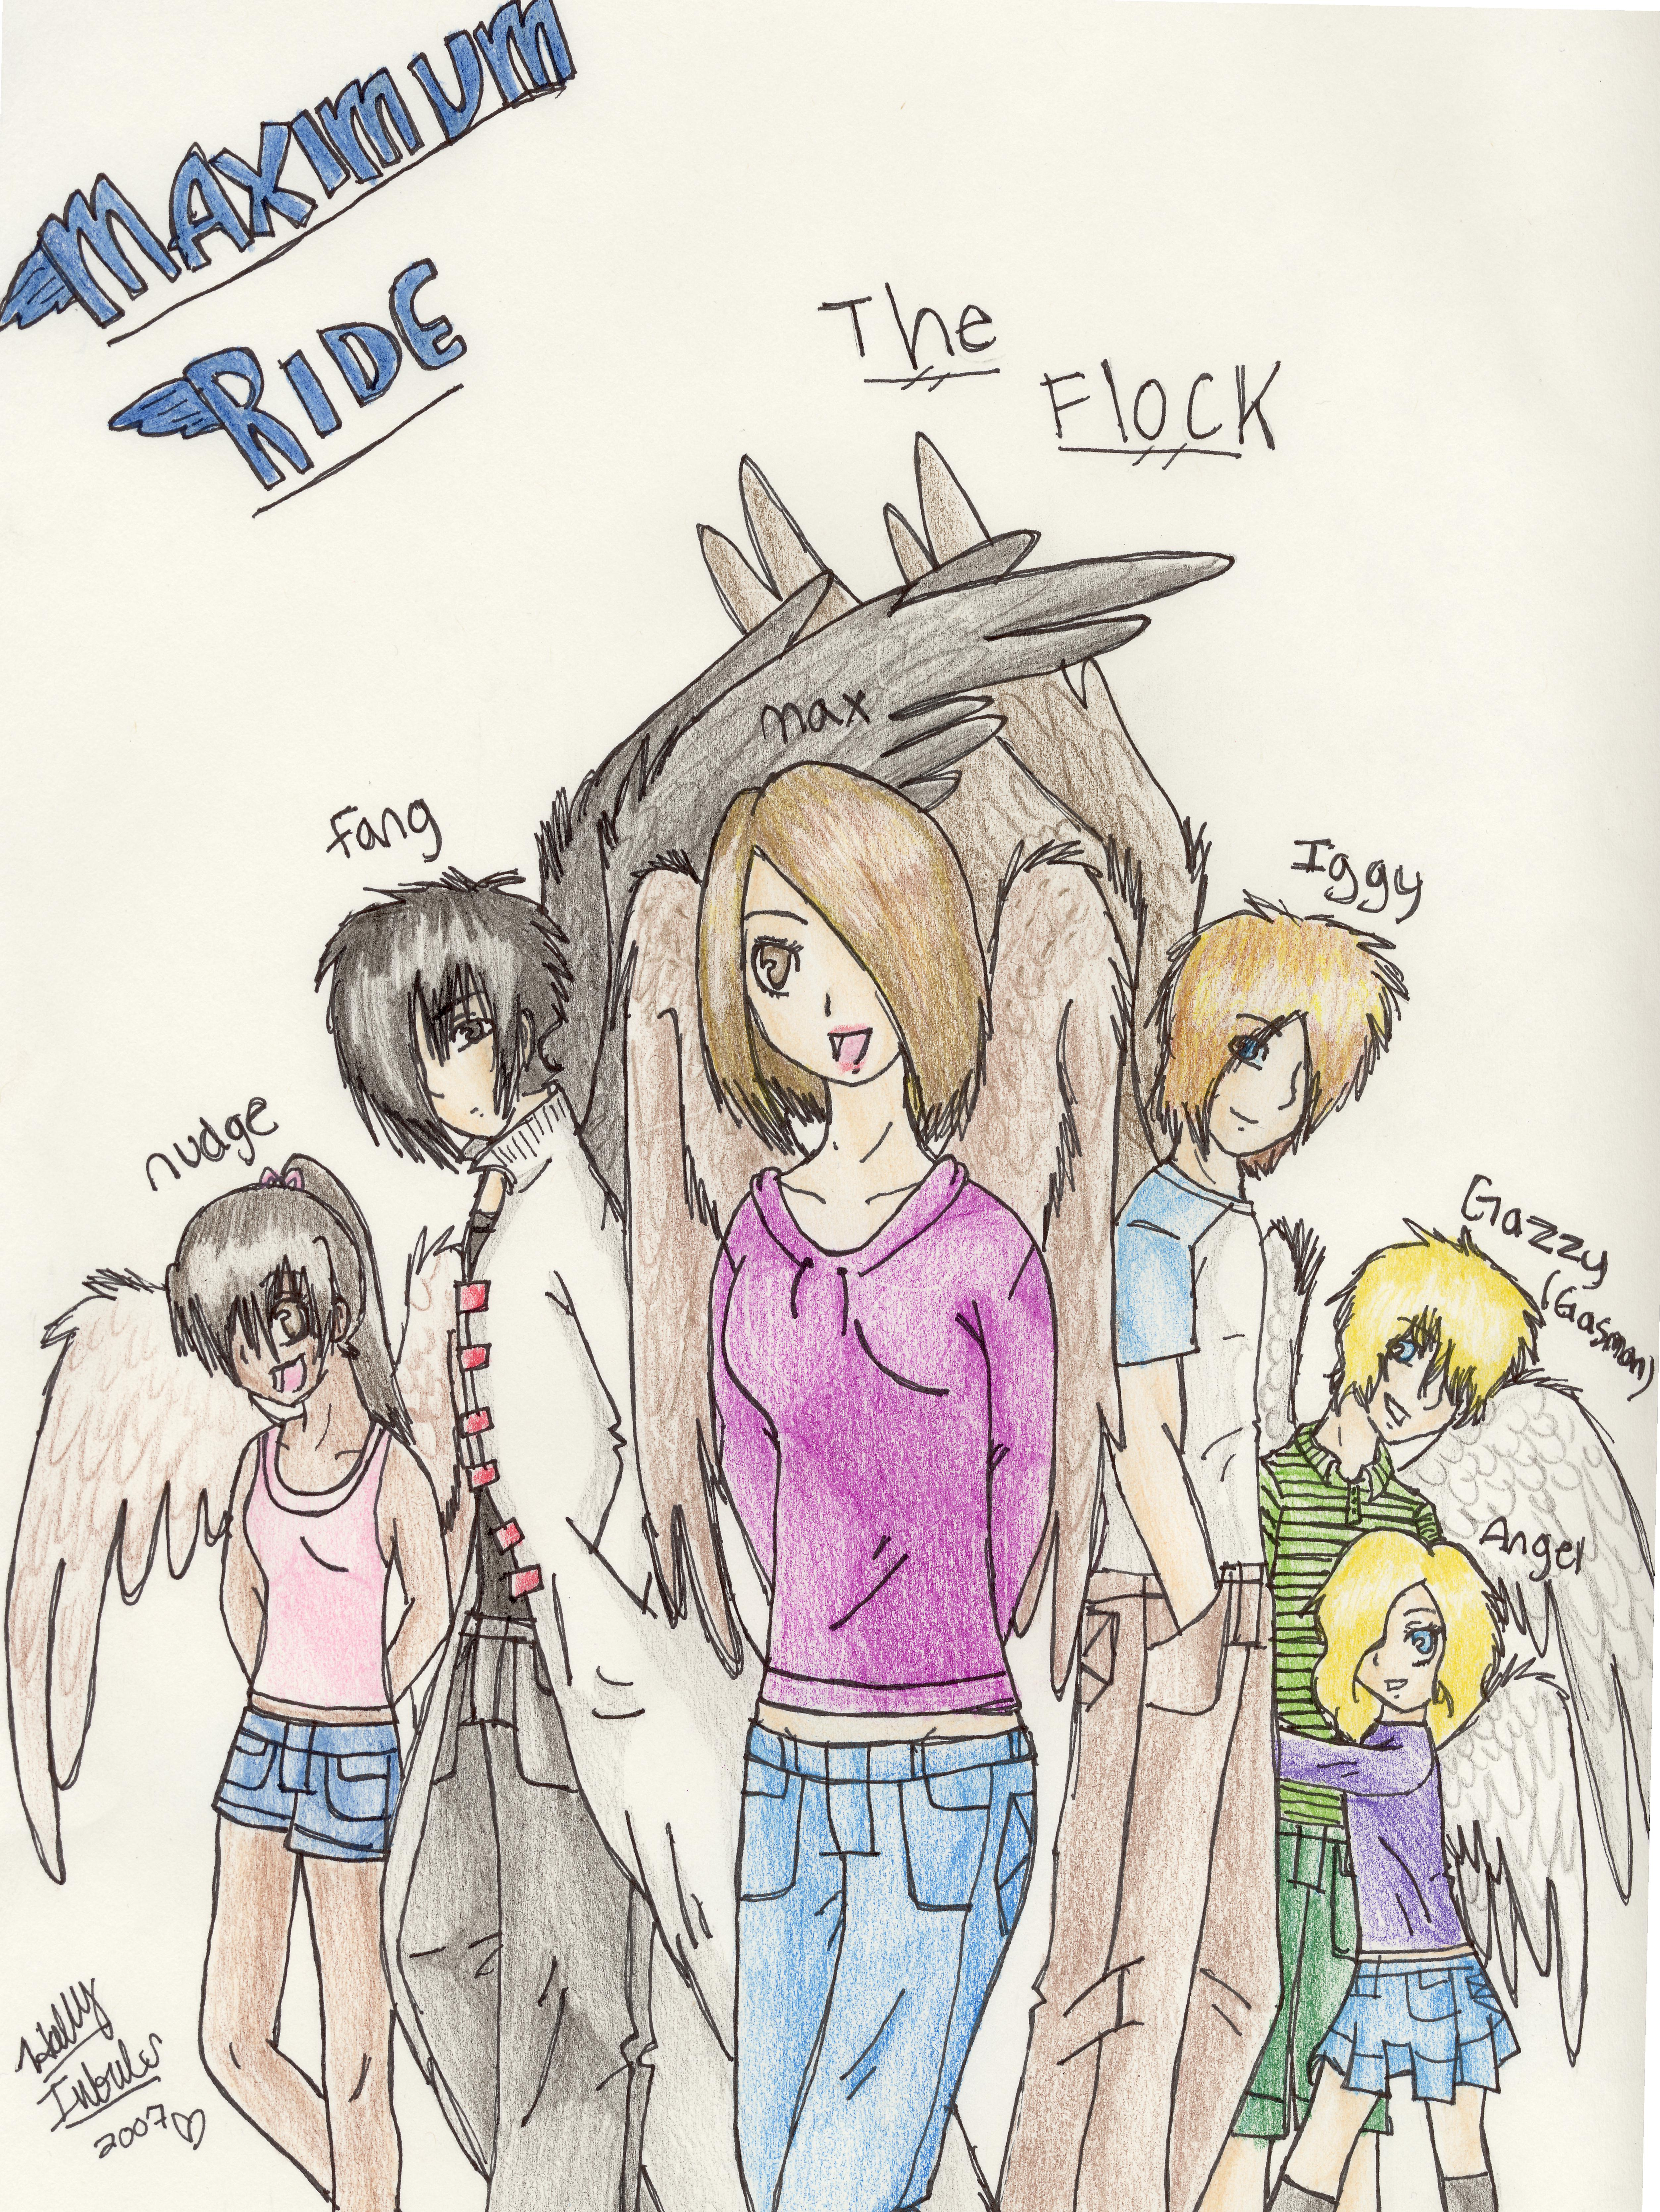 Fang Doesnt Even Know Photo as well Meet Flock Maximum Ride Character Posters also Maximum Ride Fanart furthermore Maximum Ride furthermore 592312. on fang patterson